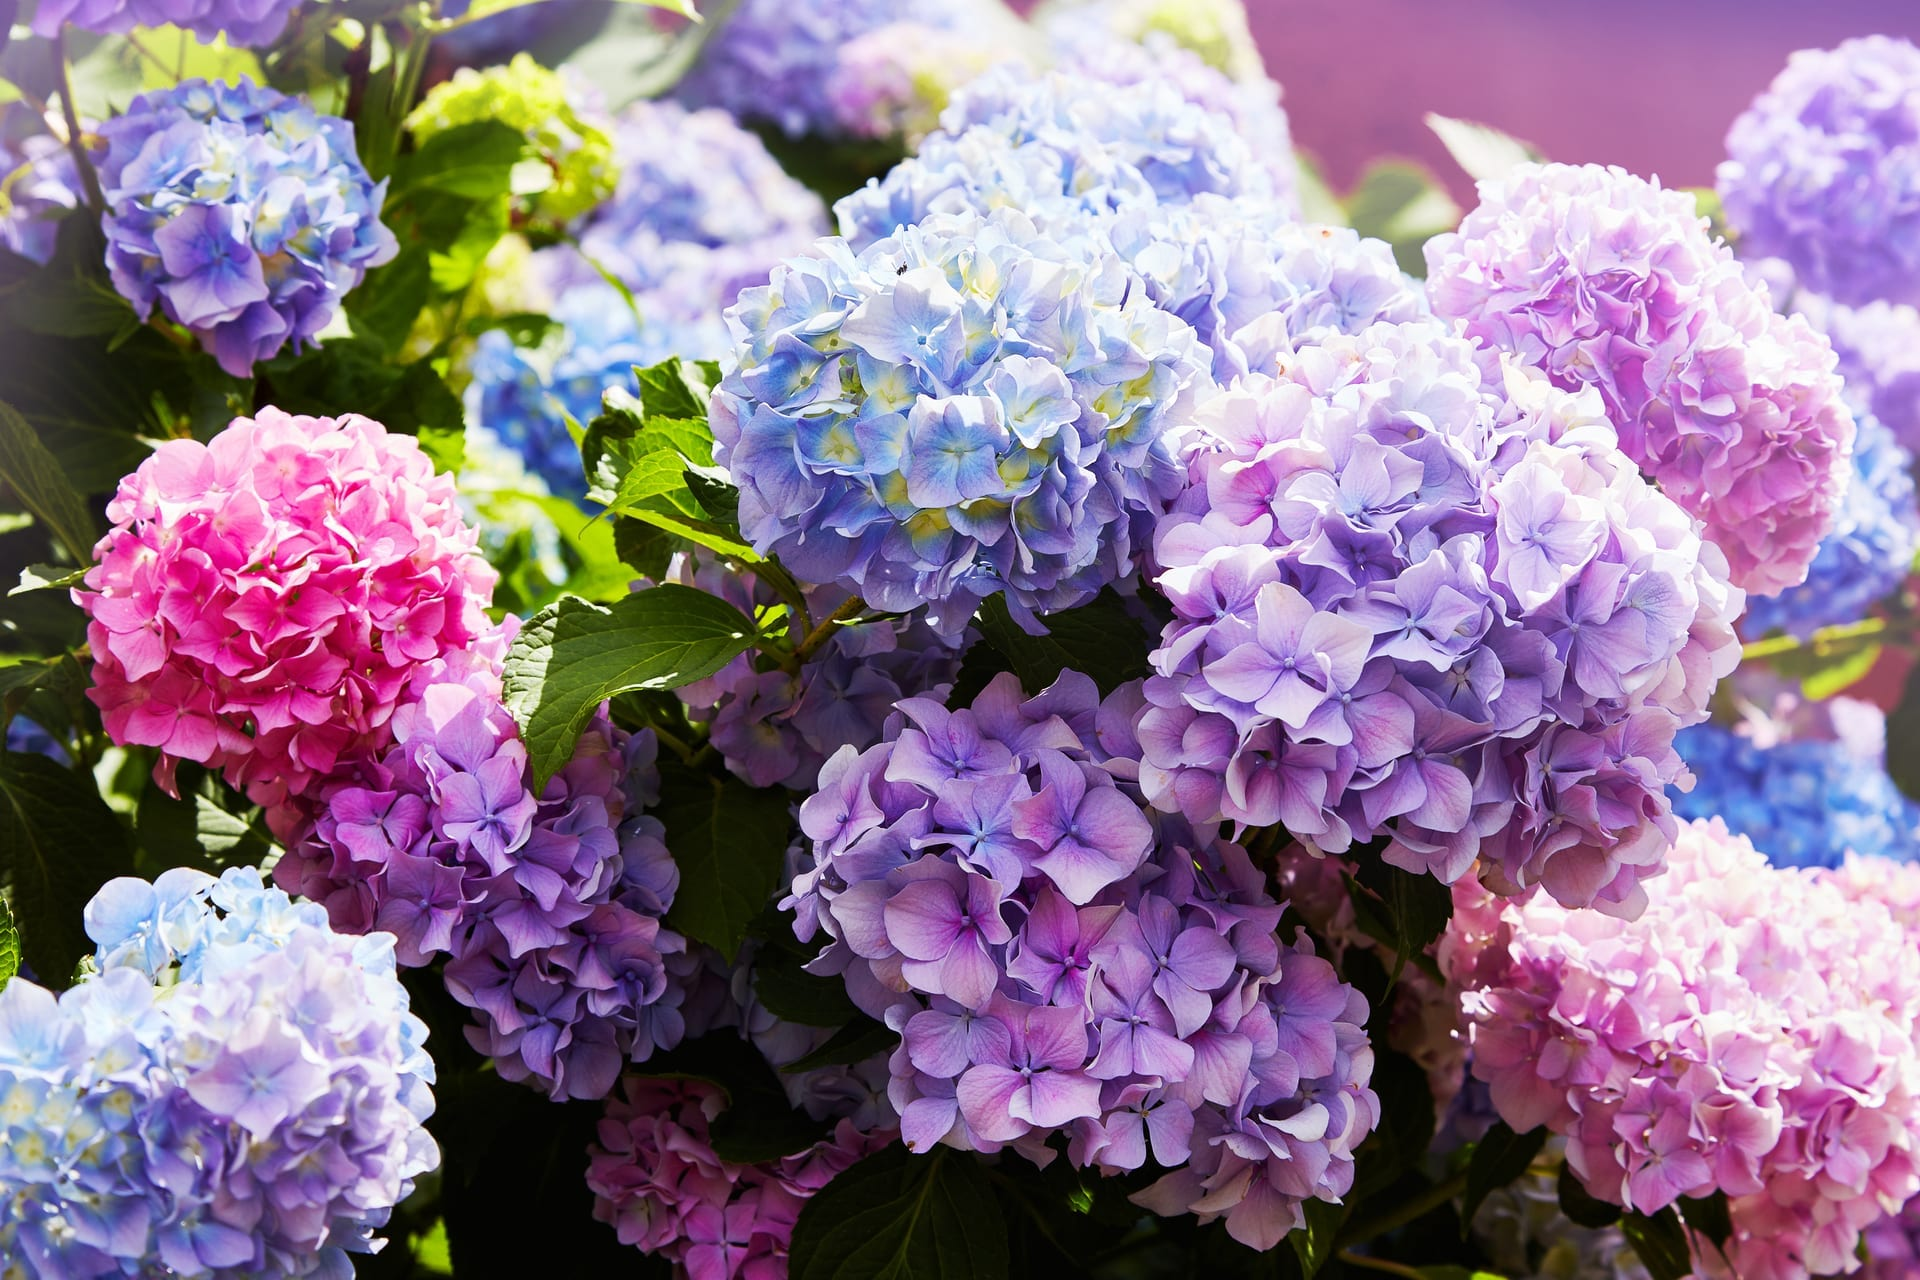 Hydrangeas, a flower that does well in the shade